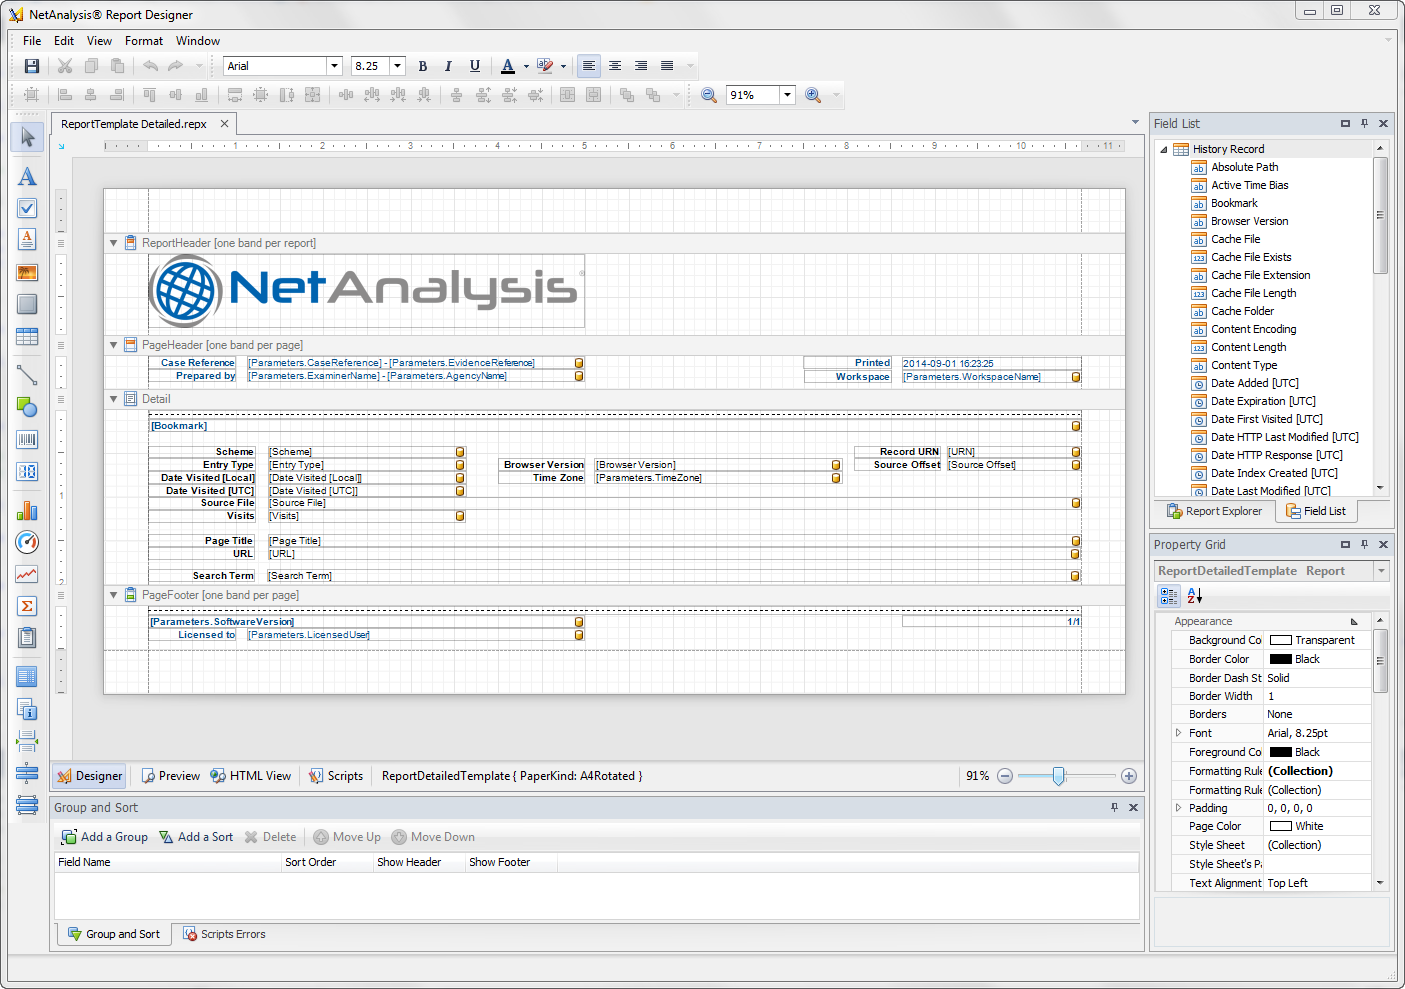 Digital Detective NetAnalysis® report designer screen with a report being edited